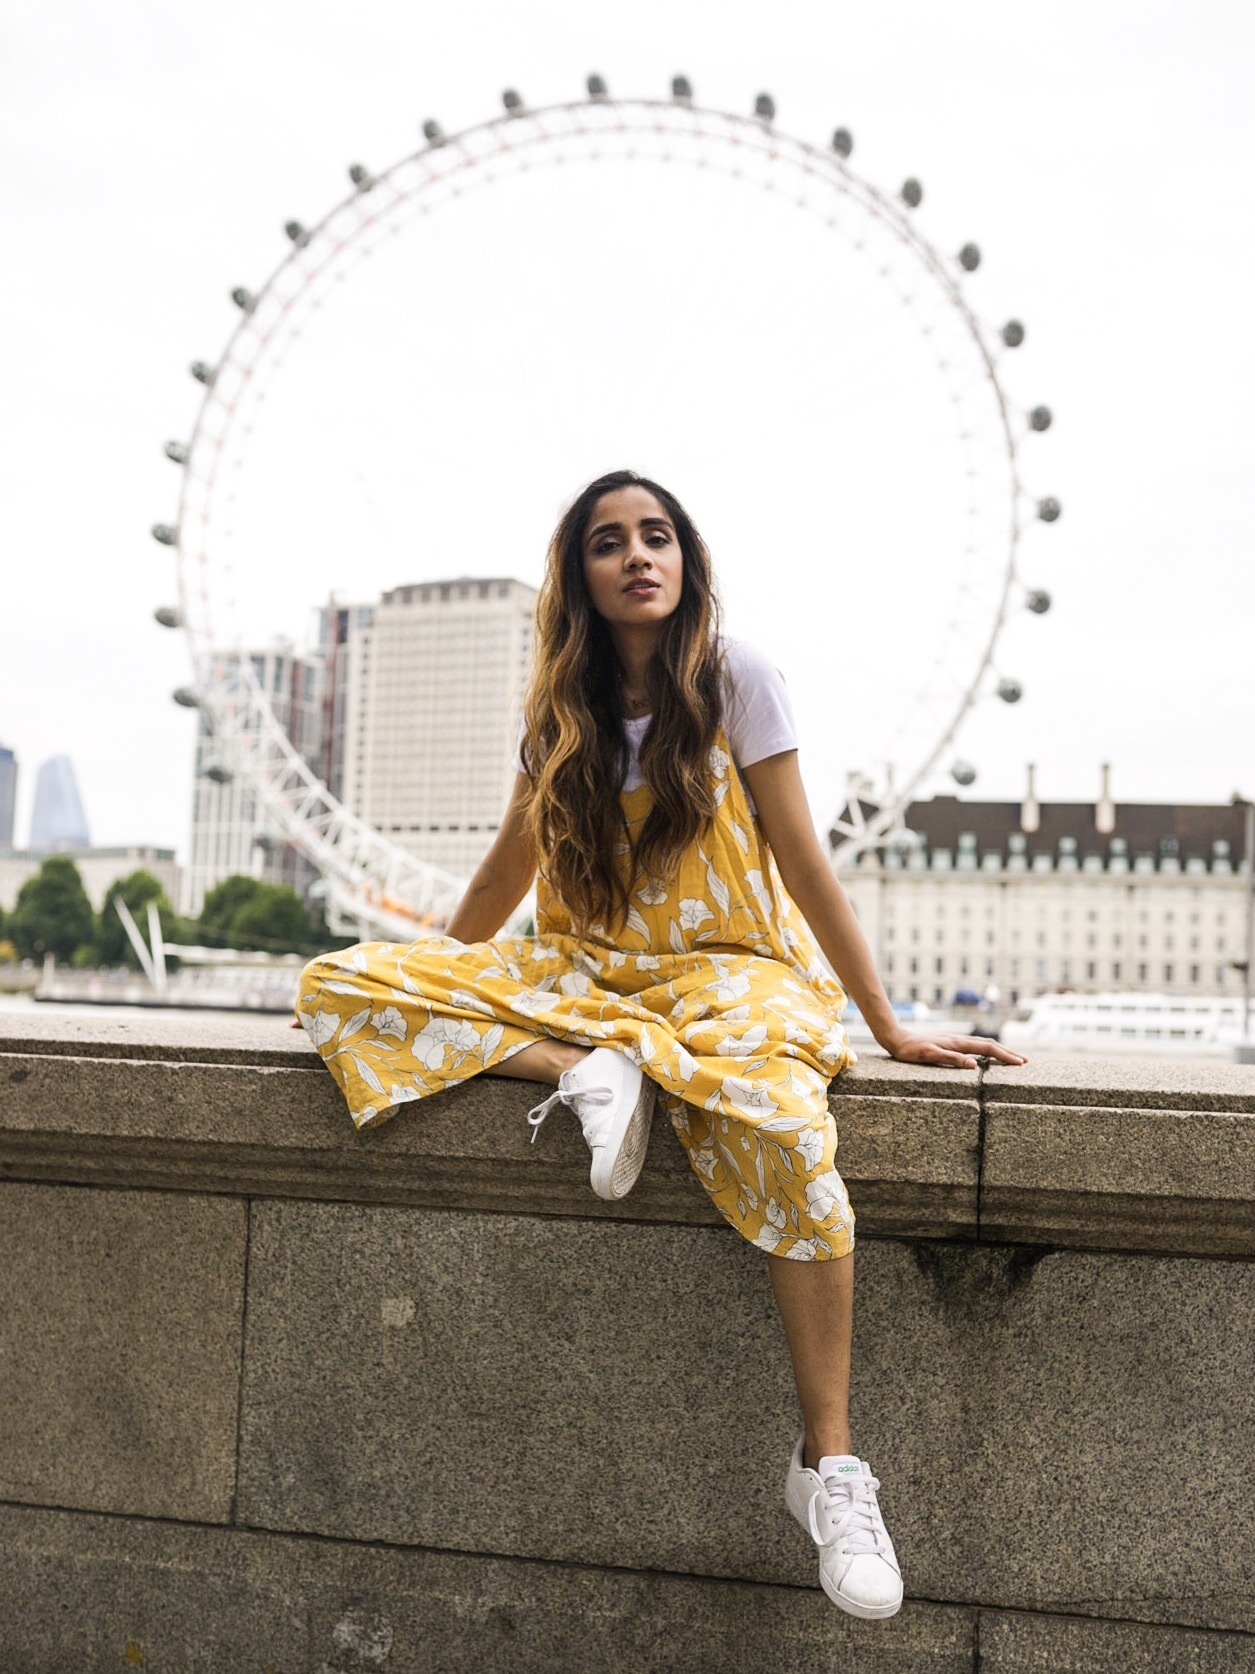 How to Explore London like a Local Tour Guide Places to See Thames River Parliament Westminister Abbey Big Ben London Eye Faiza Inam Travels SincerelyHumble 1